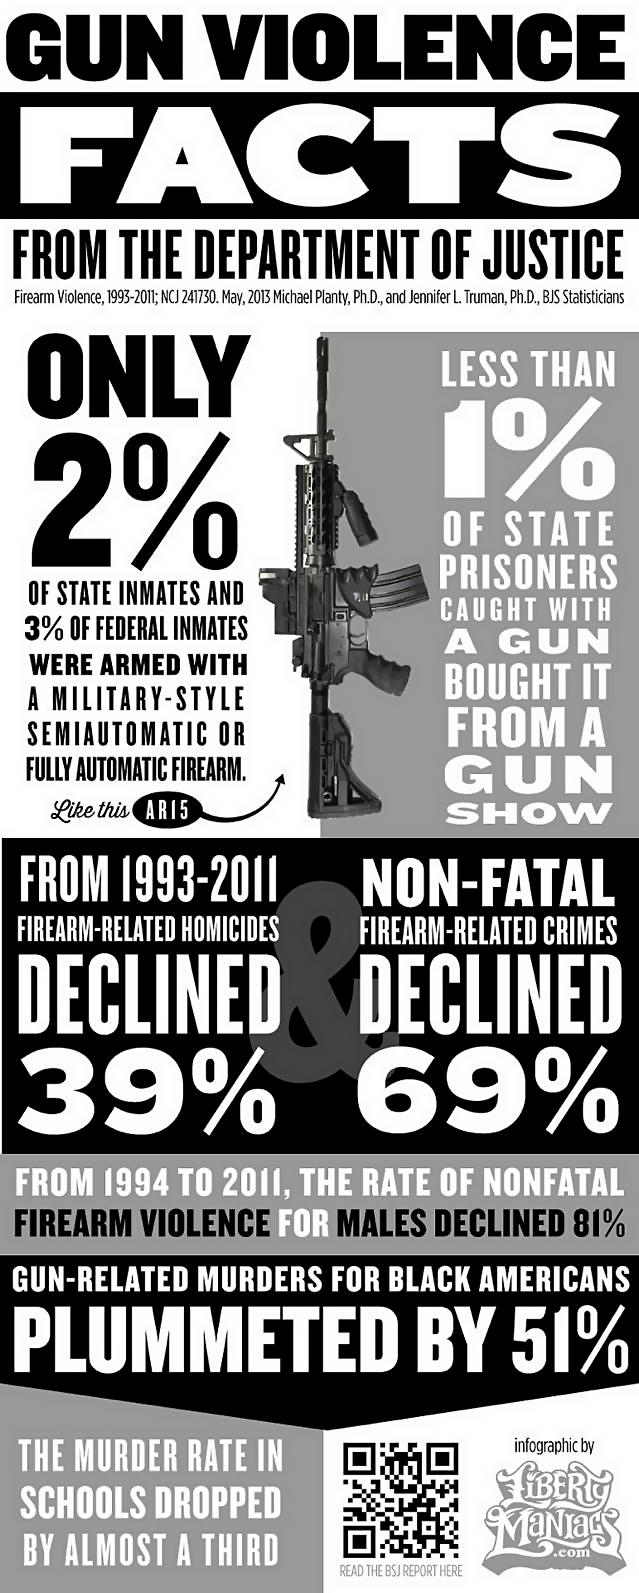 gun violence facts from the department of justice